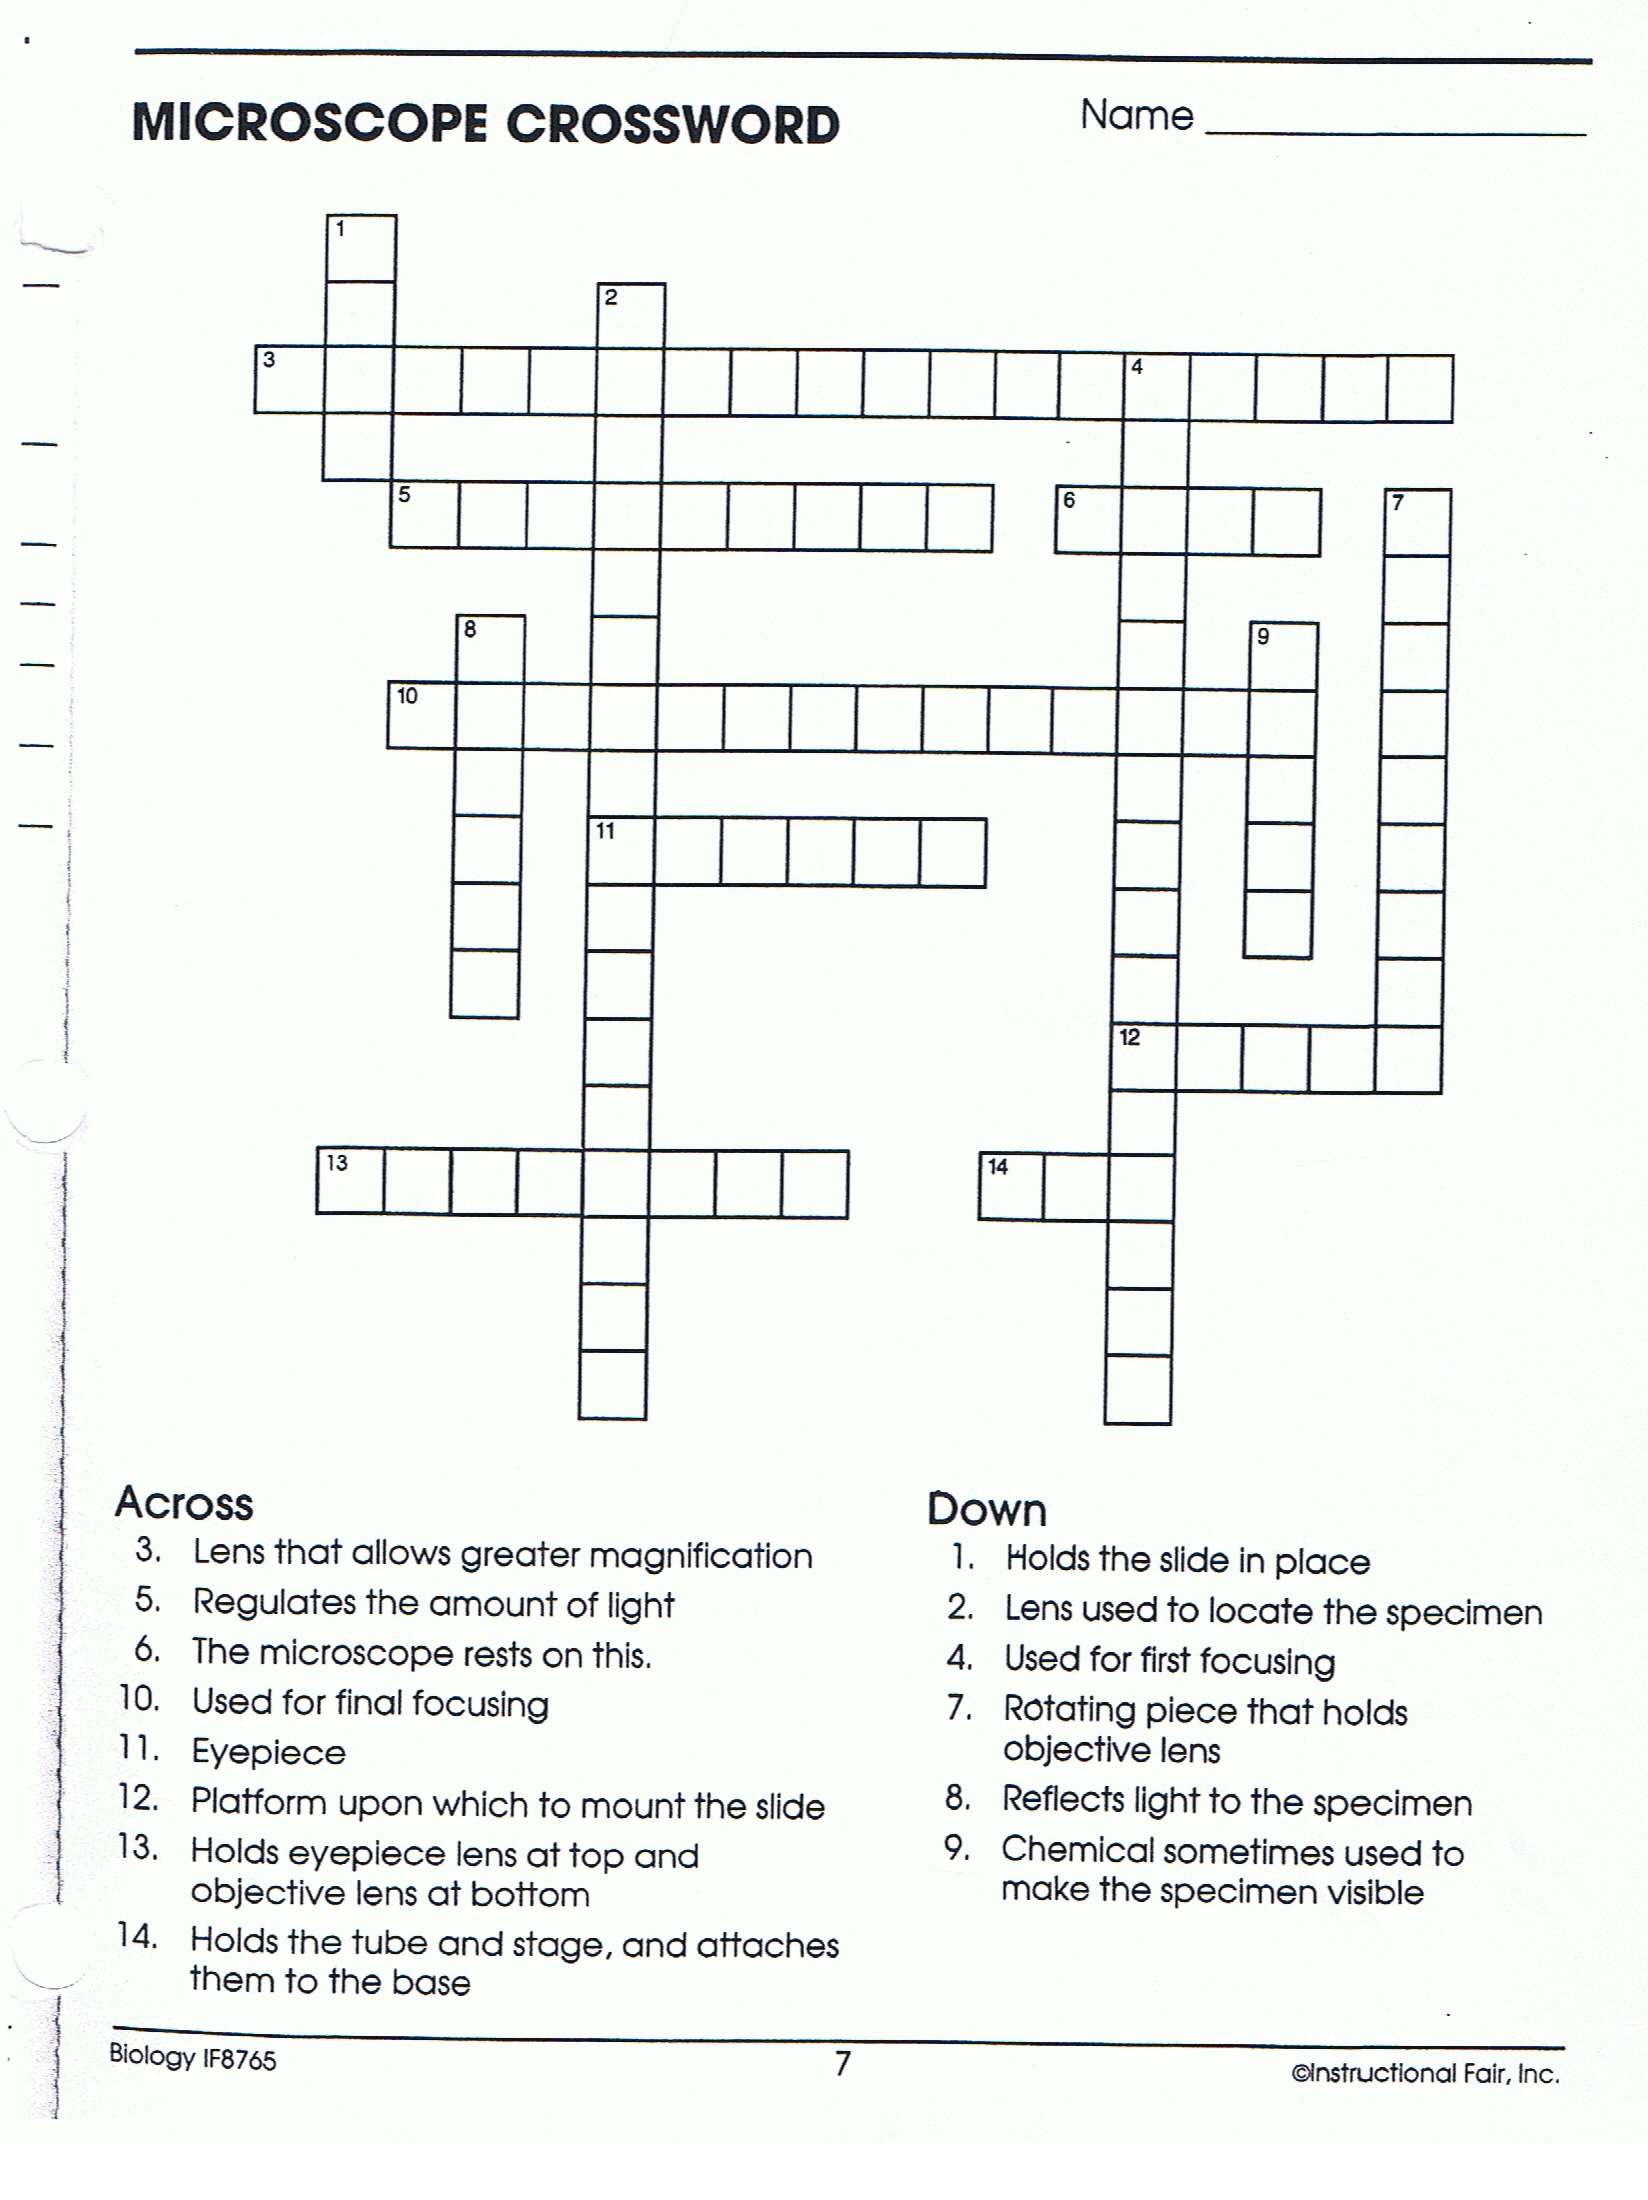 Microscope Crossword Worksheet